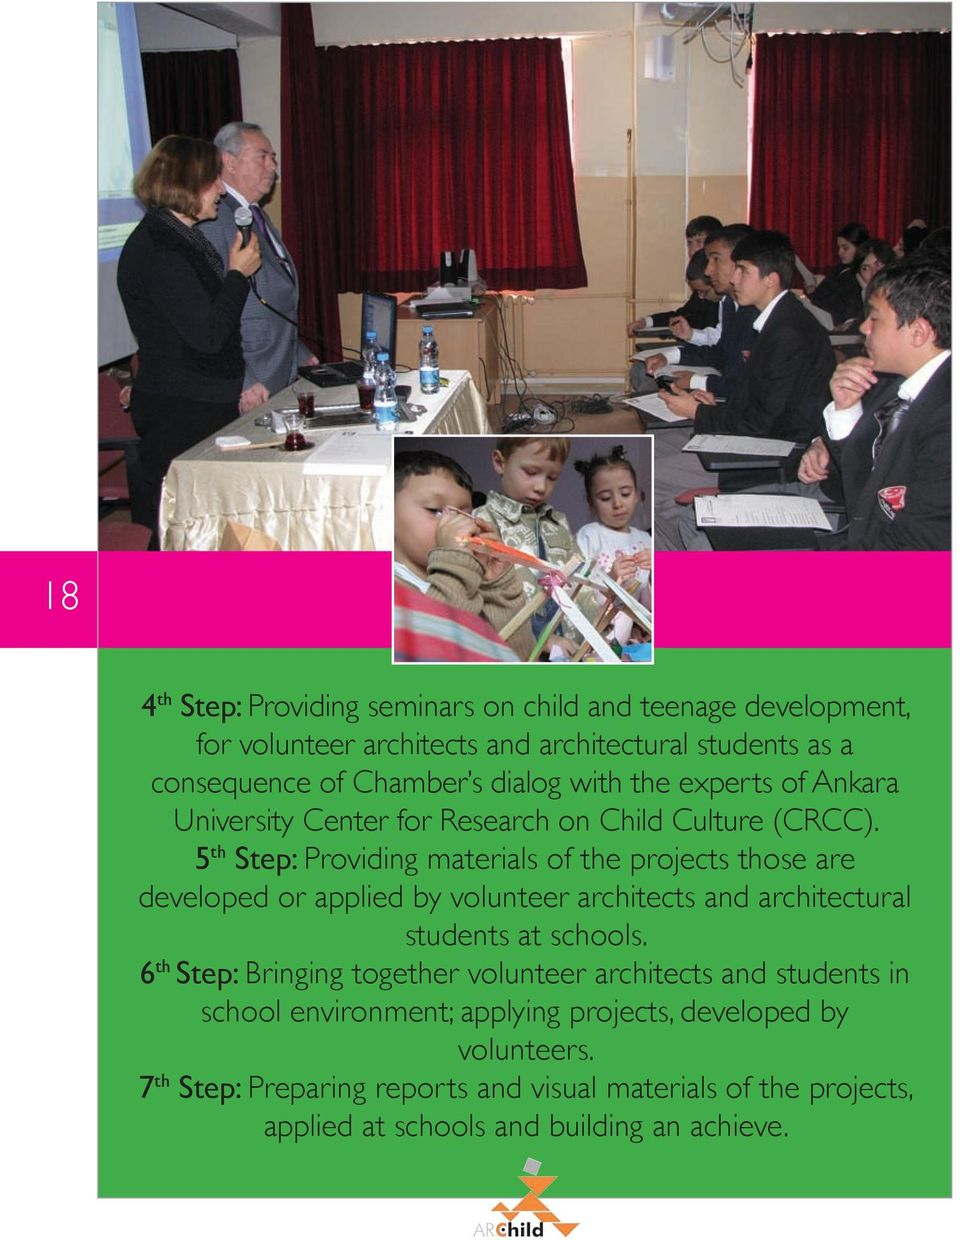 5 th Step: Providing materials of the projects those are developed or applied by volunteer architects and architectural students at schools.